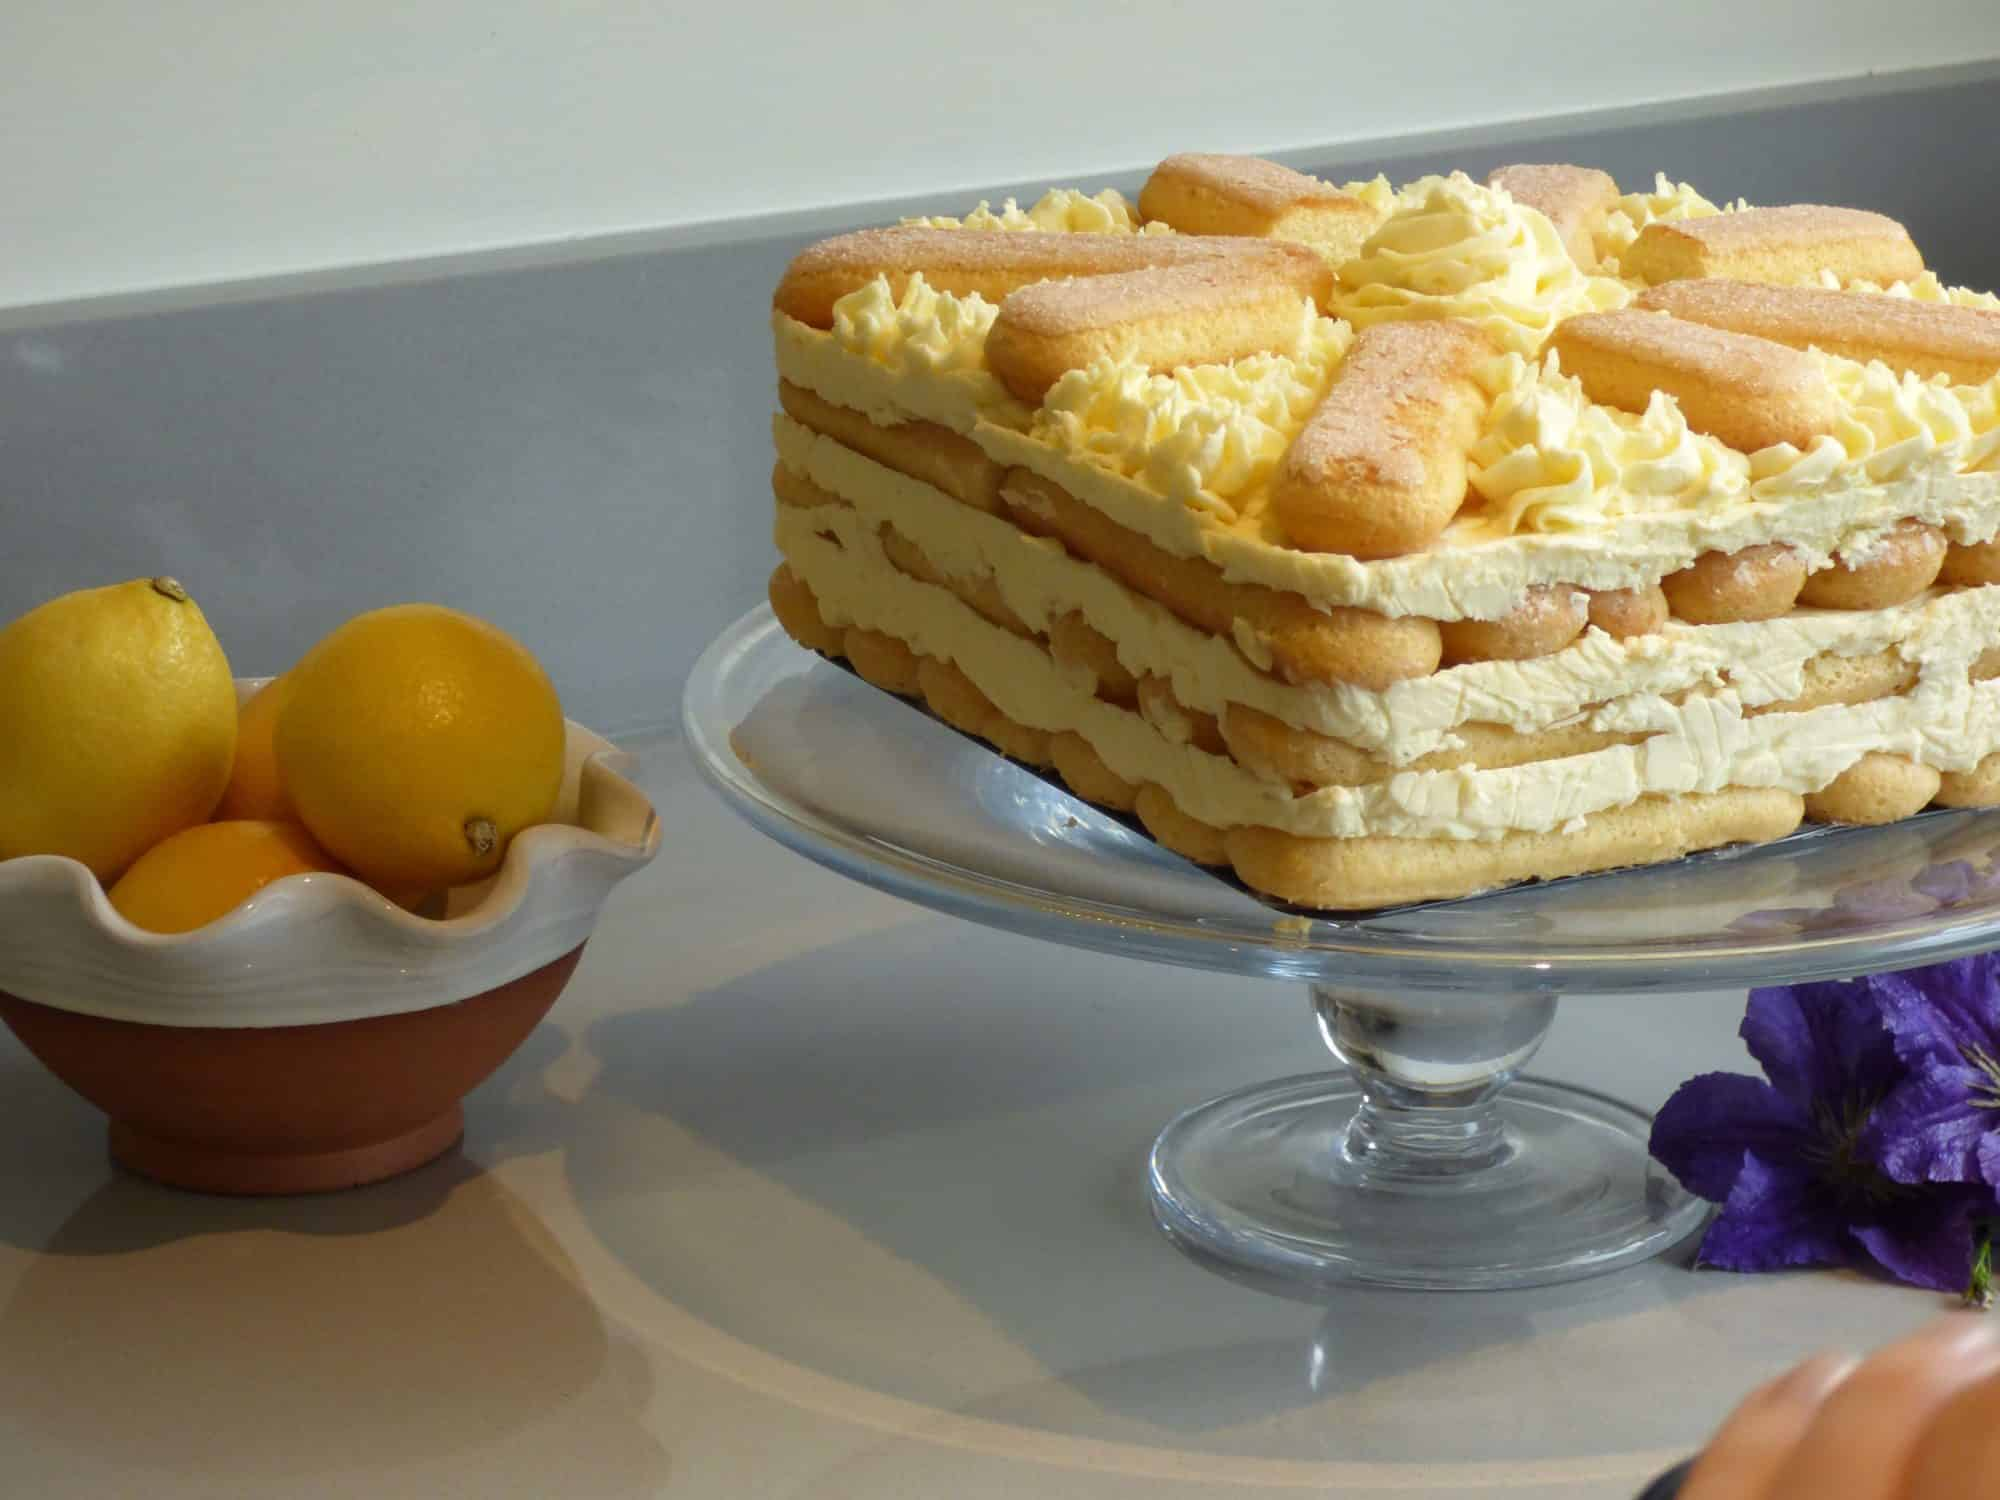 Lemon sponge fingers icebox cake on a glass cake stand